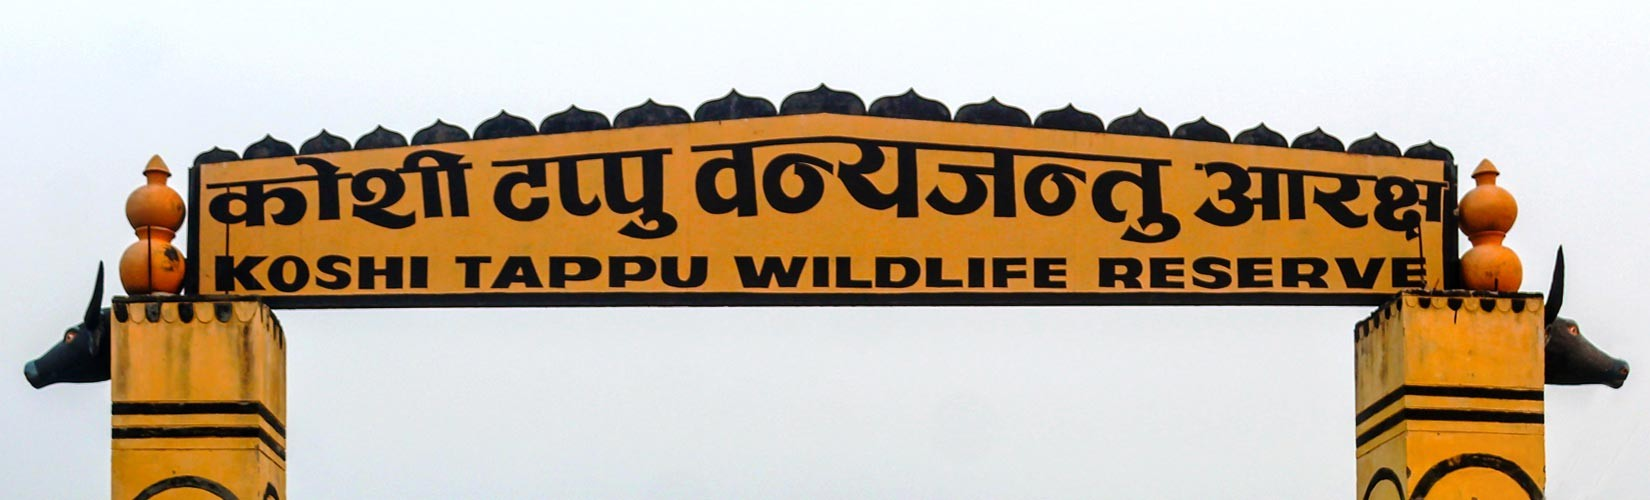 Arna Buffalo at Koshi Tappu Wildlife Reserve